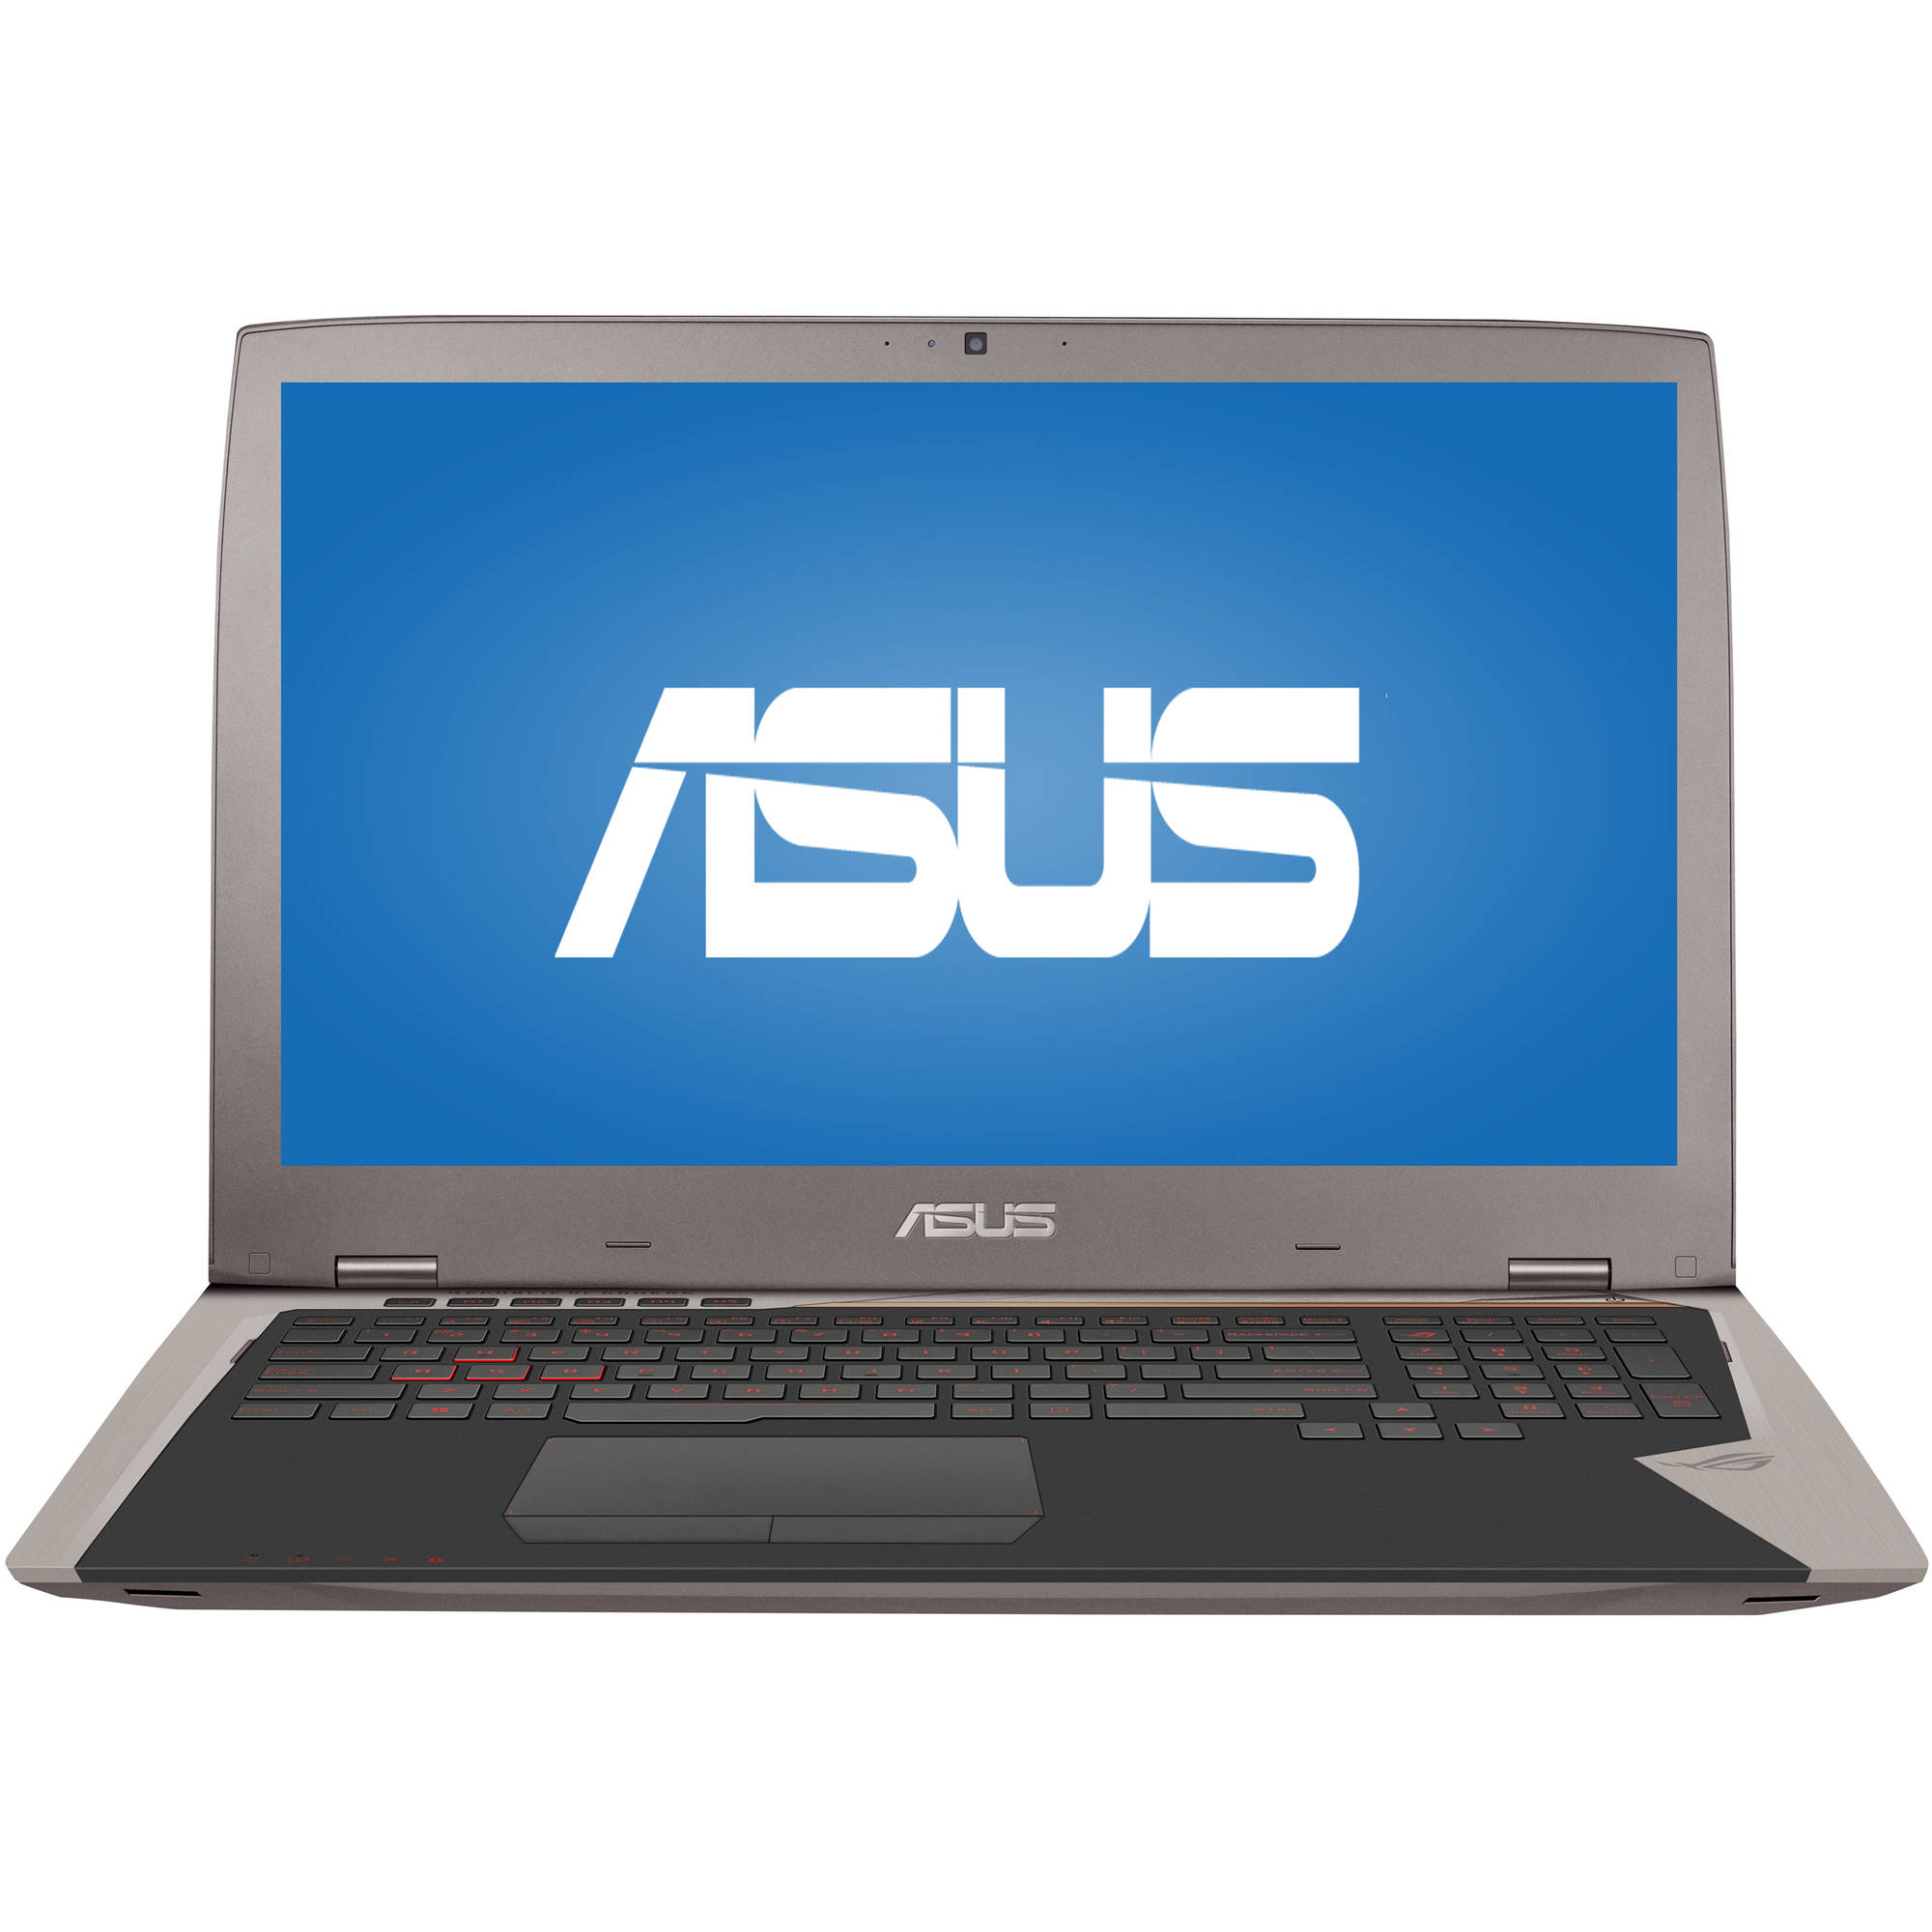 "ASUS Republic of Gamers 90NB0E61-M00130 17.3"" Gaming Laptop, Windows 10 Professional, Intel Core... by ASUS"